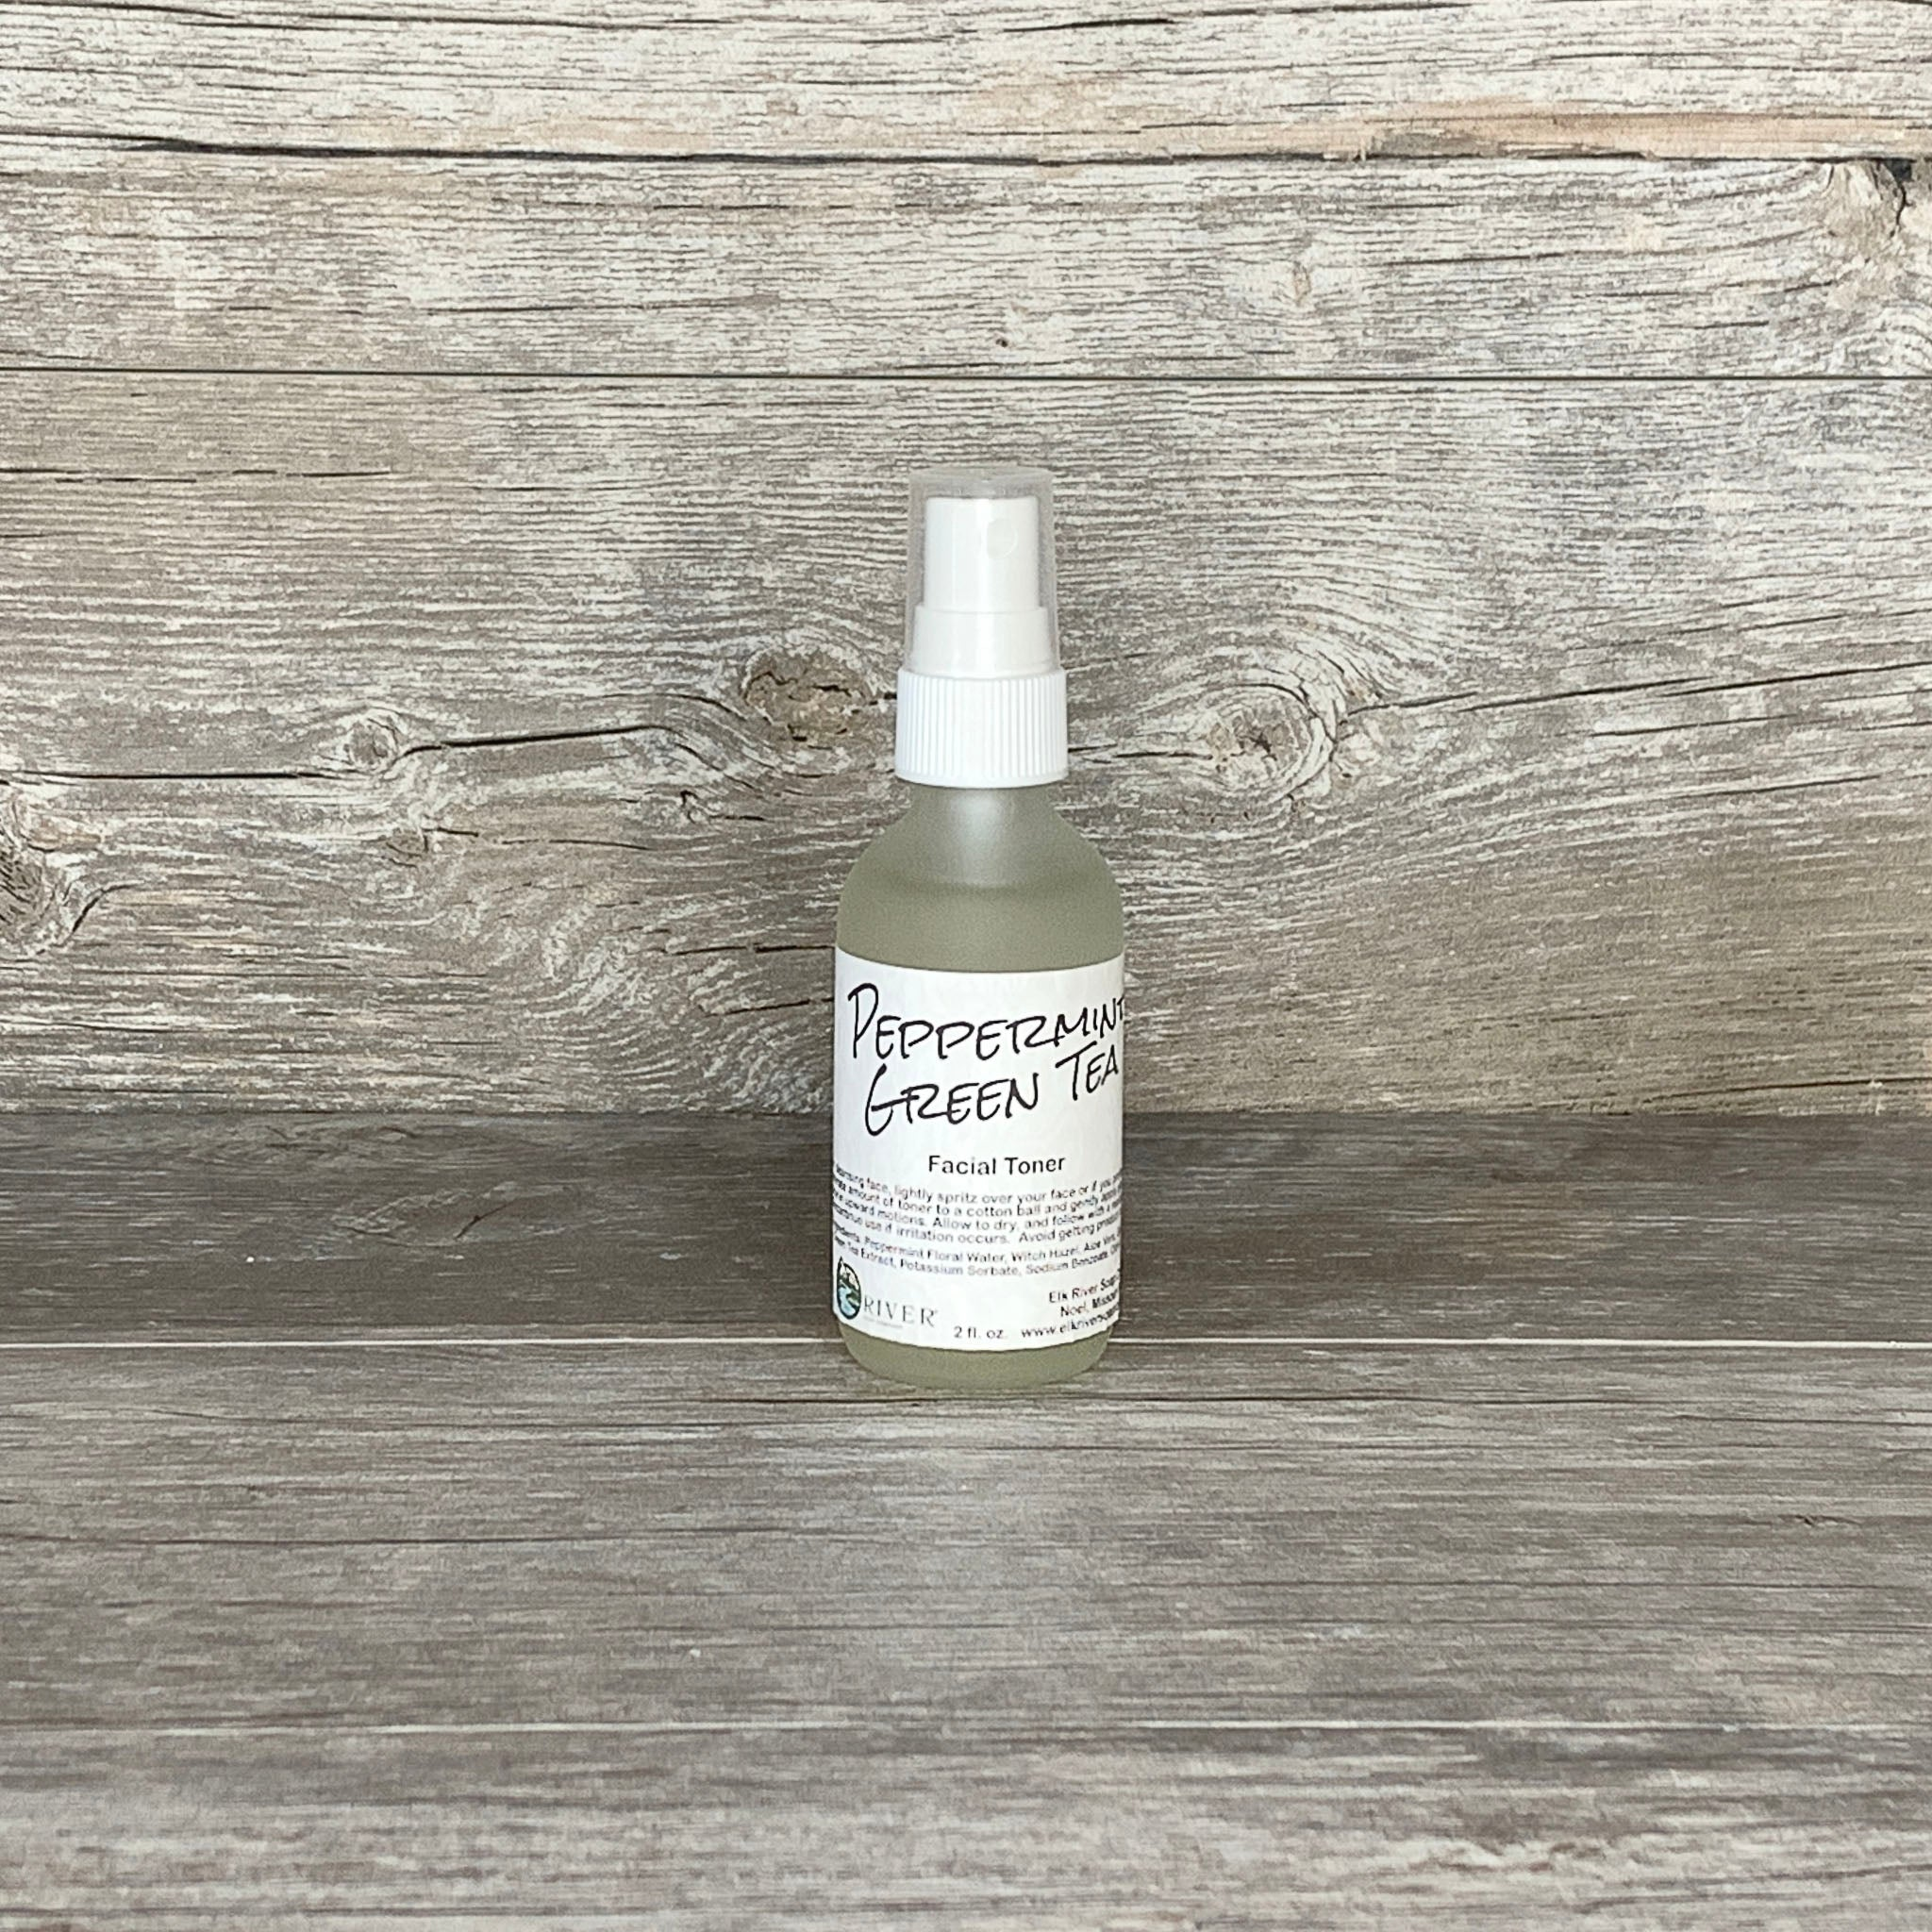 Peppermint Green Tea Facial Toner